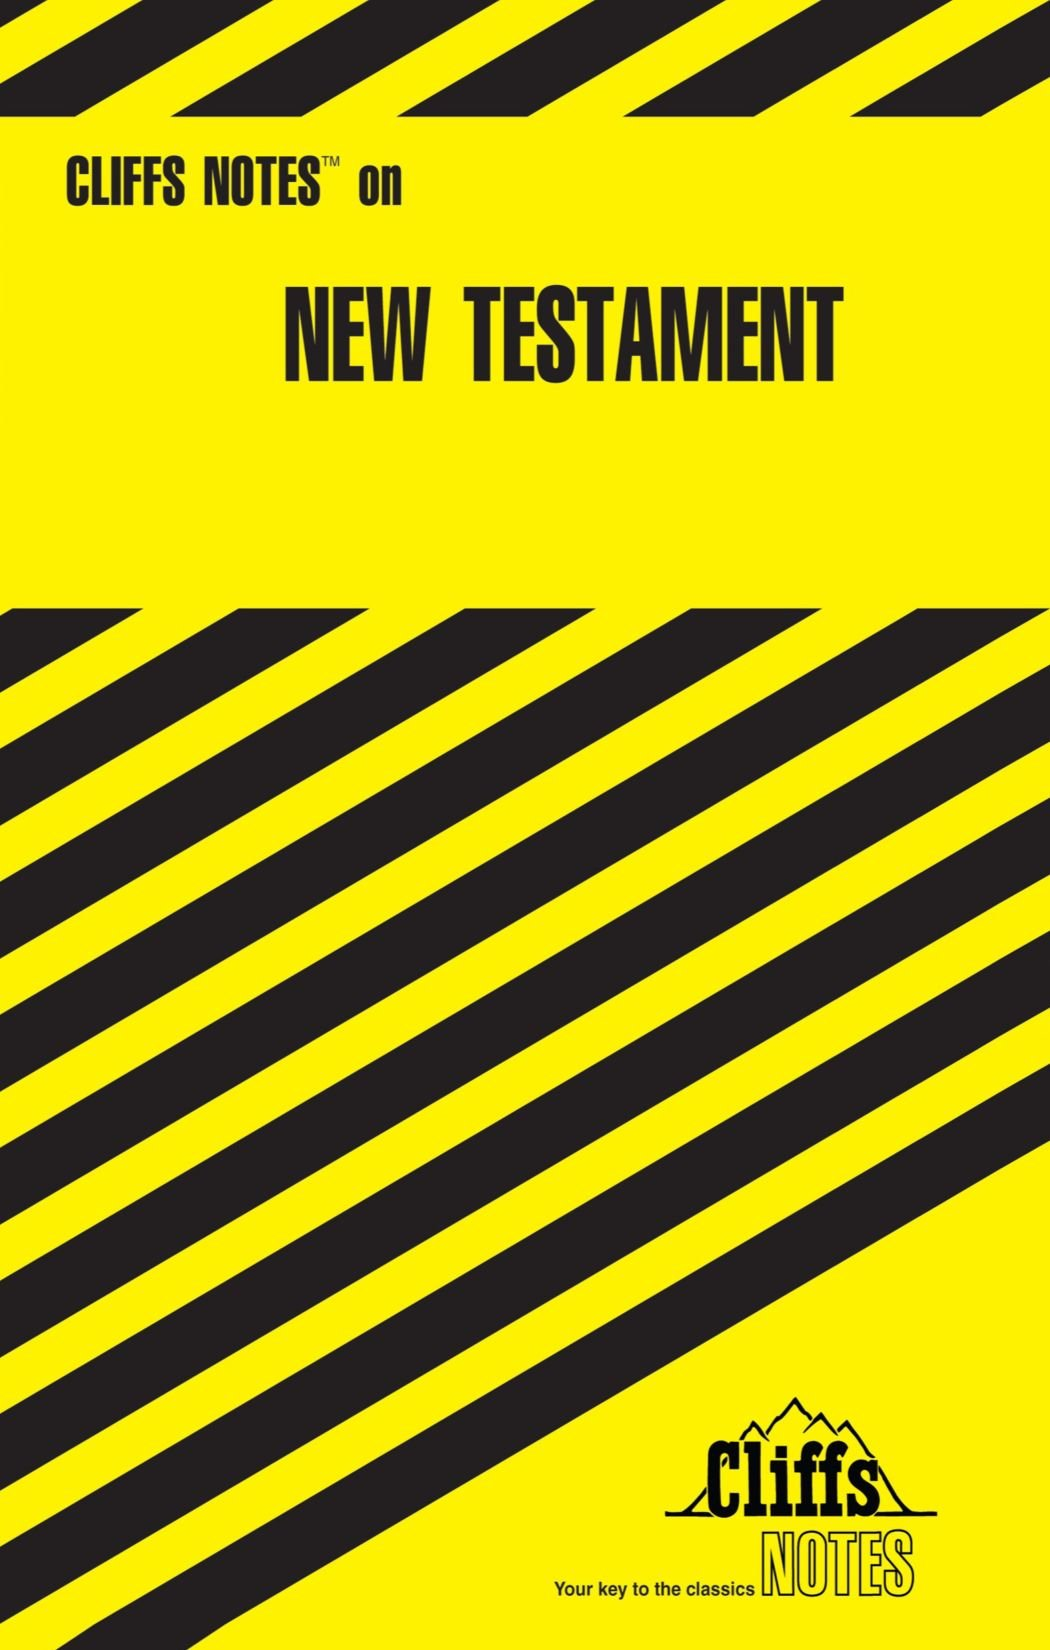 CliffsNotes on New Testament: Amazon.co.uk: Ph.D Charles H ...